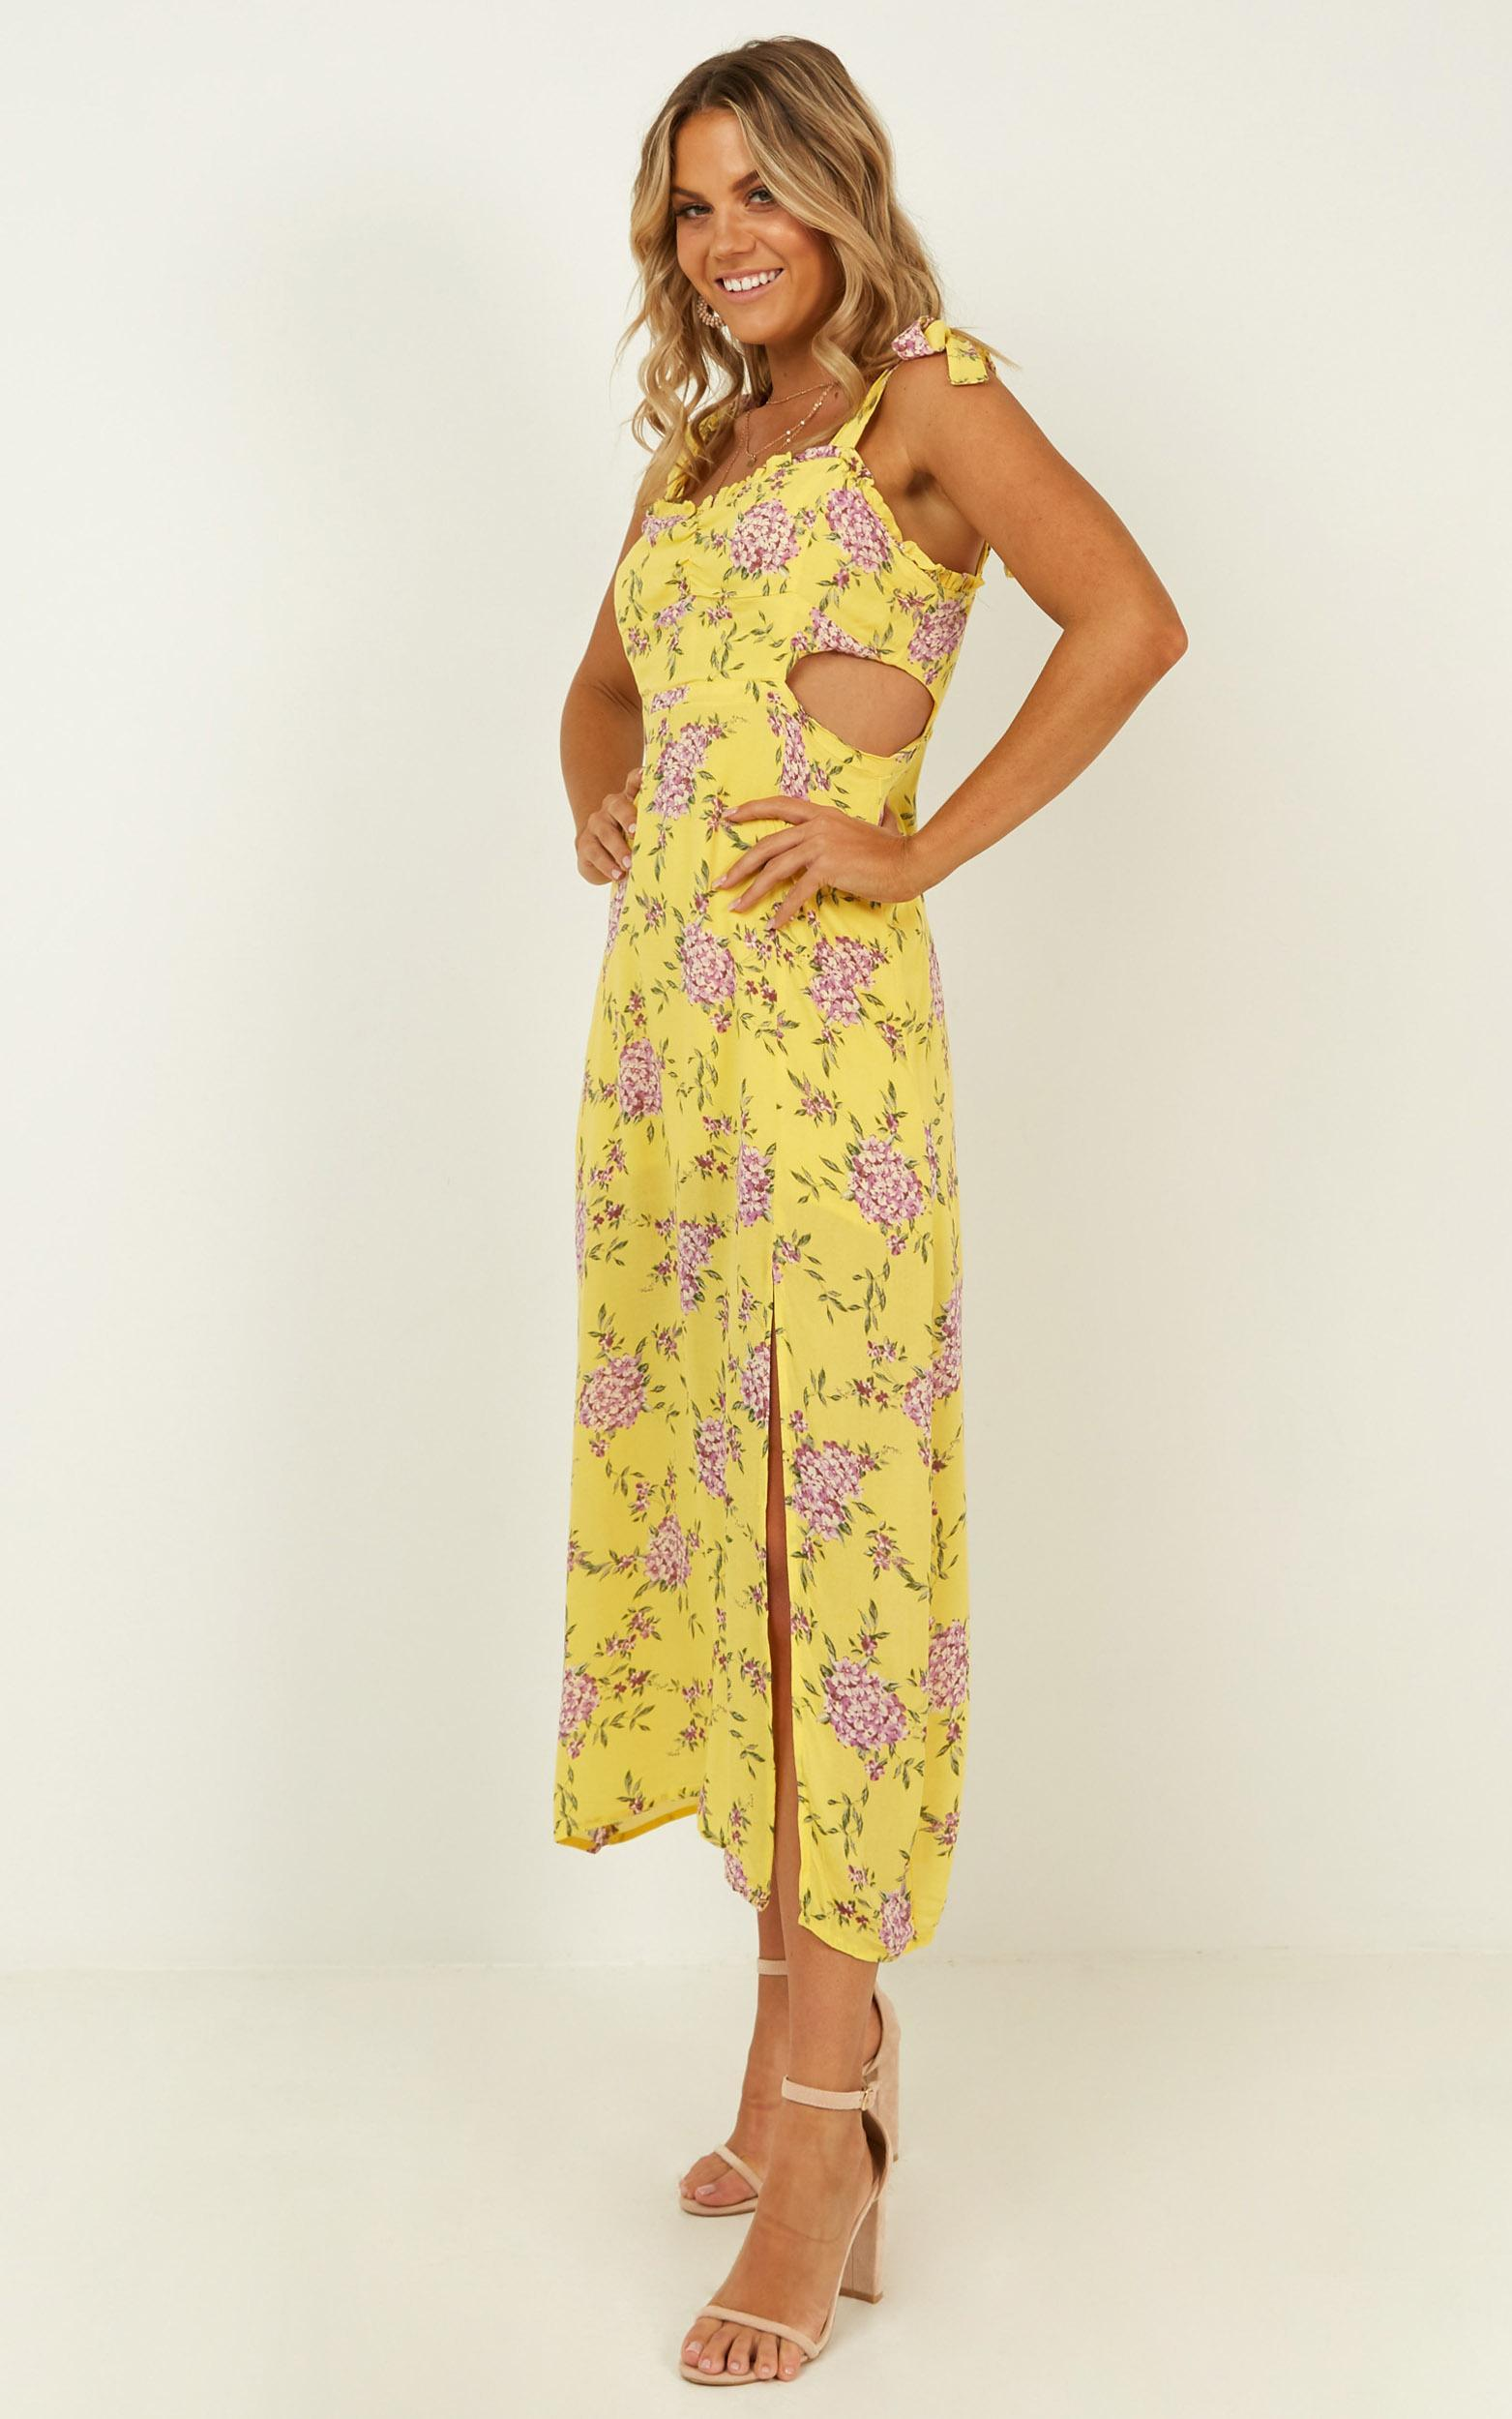 Win My Love dress in yellow floral - 12 (L), Yellow, hi-res image number null